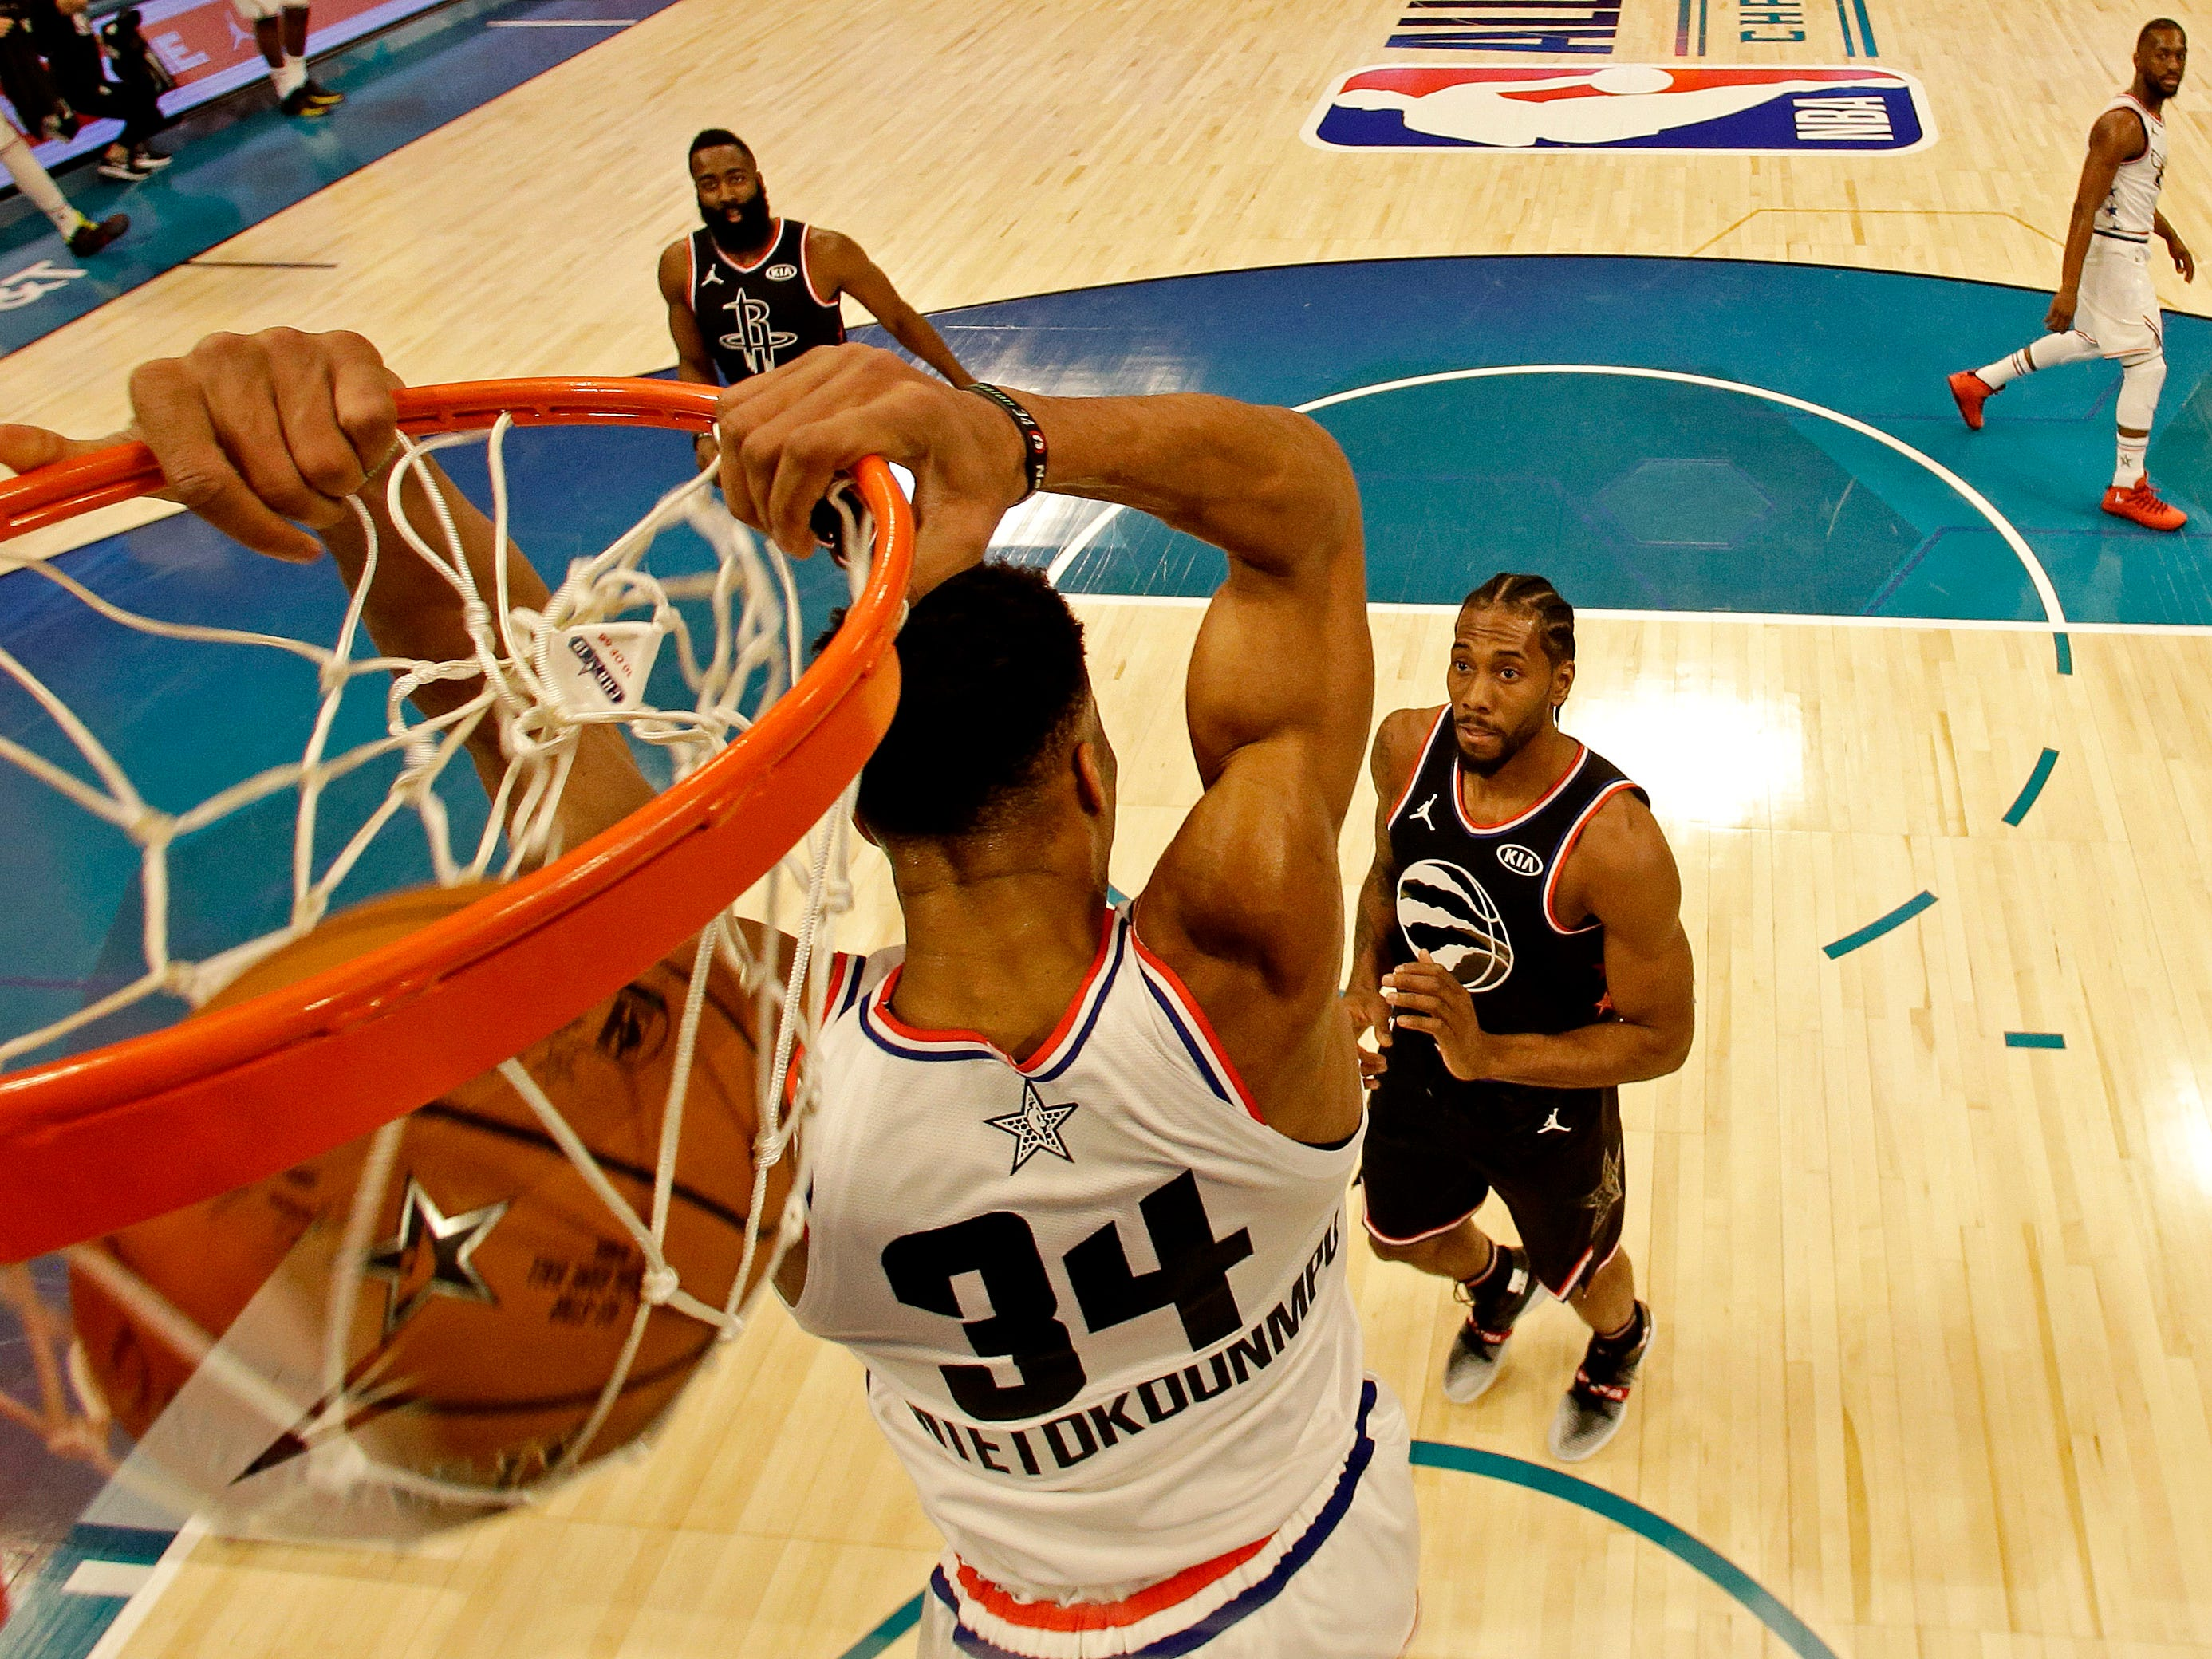 Giannis Antetokounmpo hangs on the rim after dunking the ball behind his head on Sunday night.